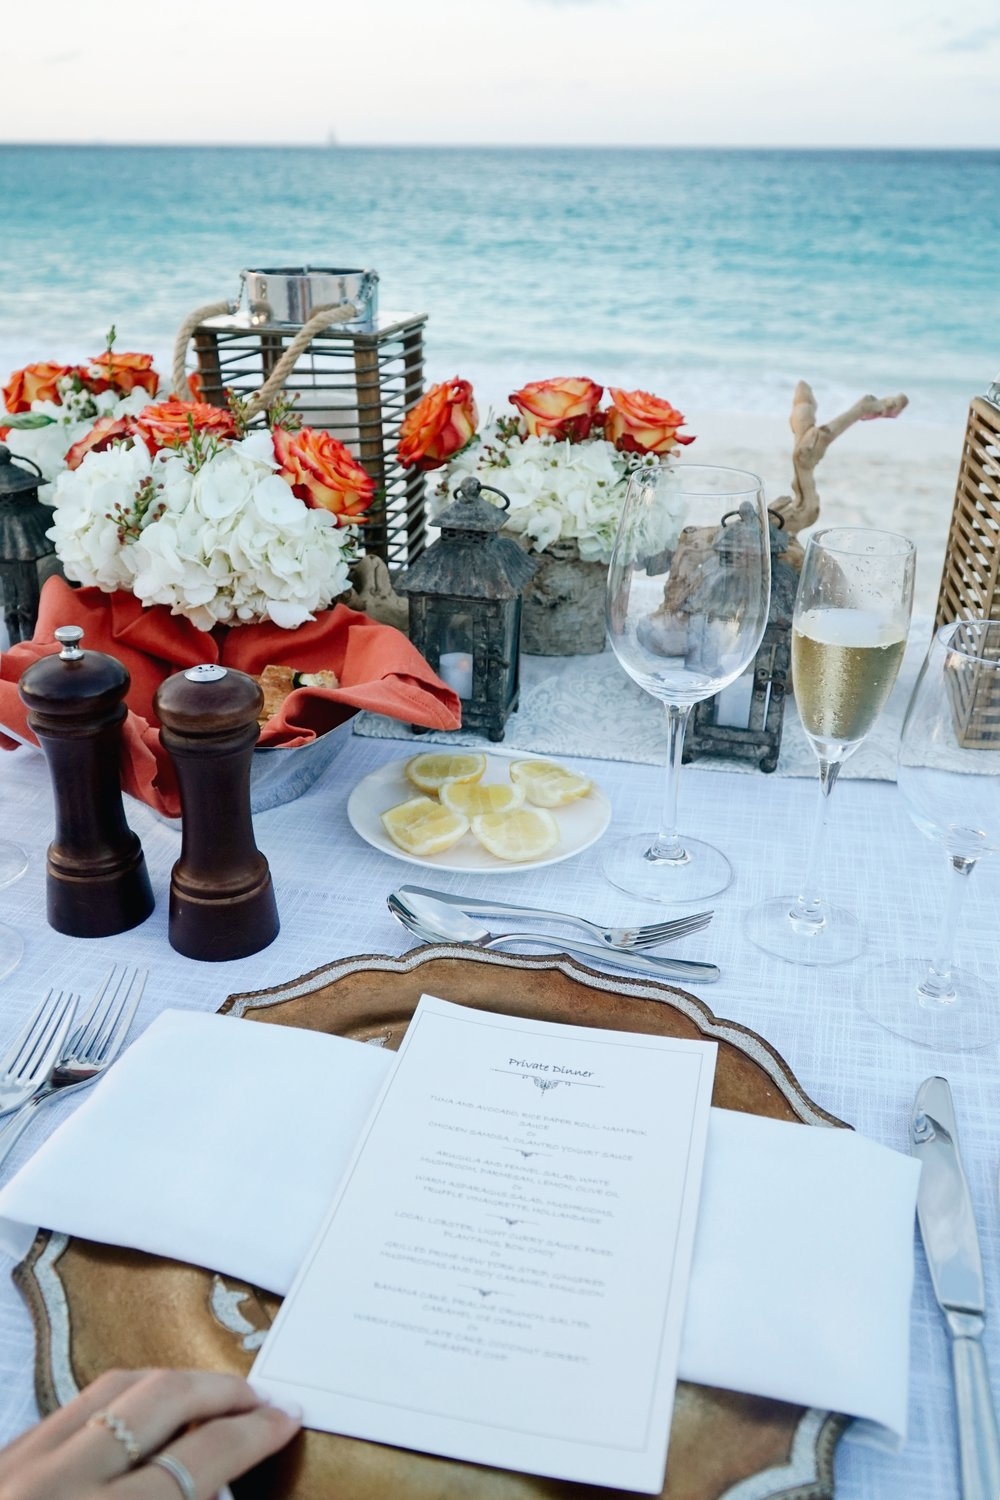 A dream dinner at the beach at the One&Only Ocean Club in the Bahamas taken by Julia Friedman.